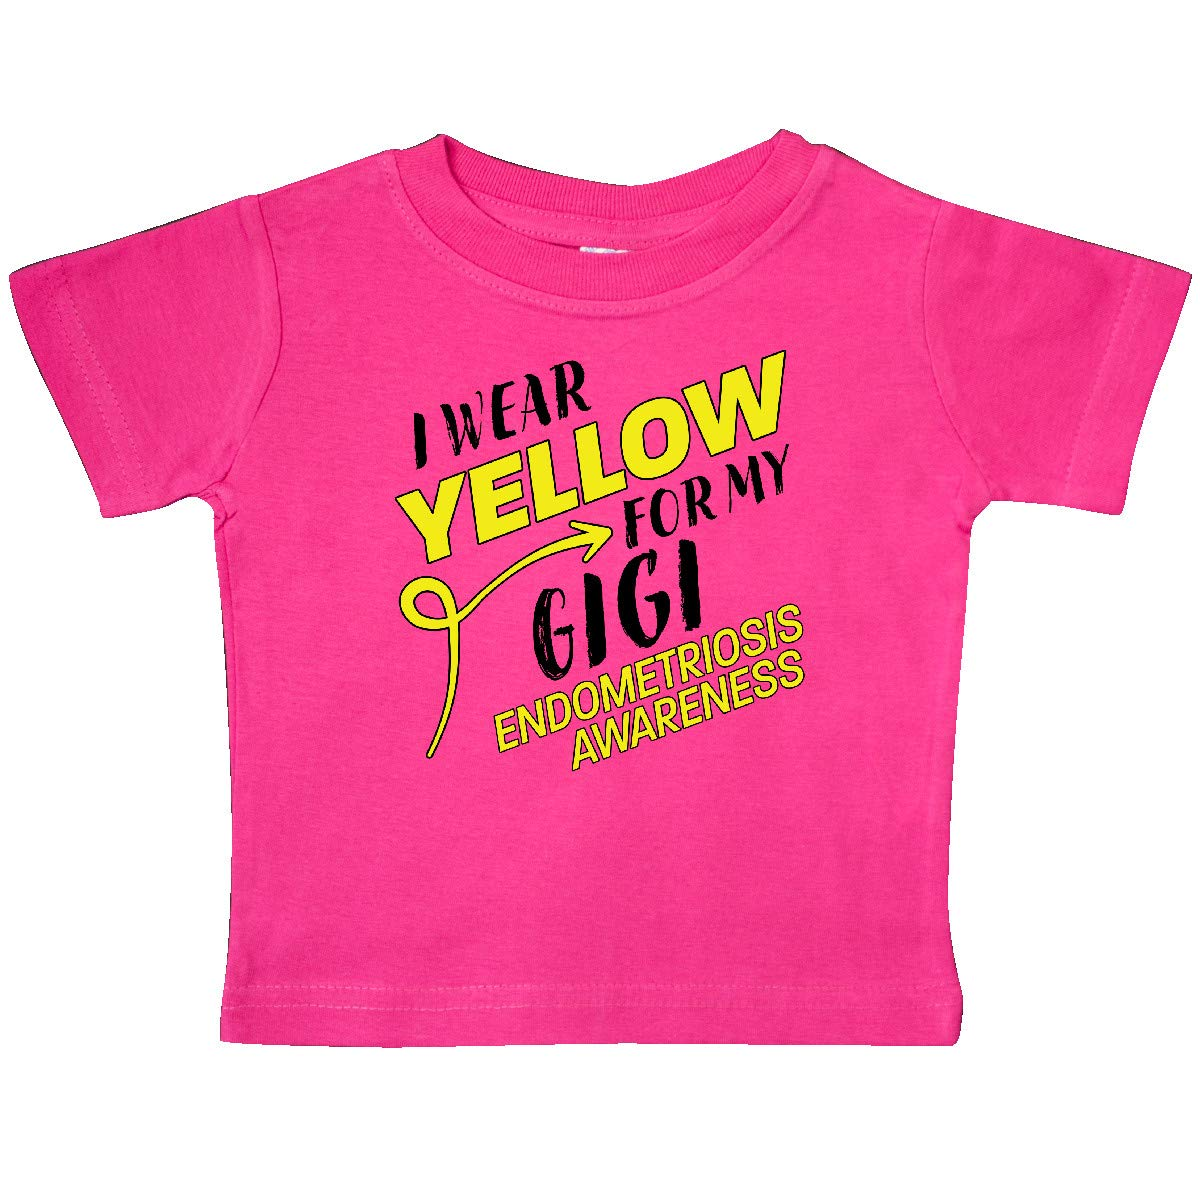 inktastic I Wear Yellow for My Gigi Endometriosis Awareness Baby T-Shirt